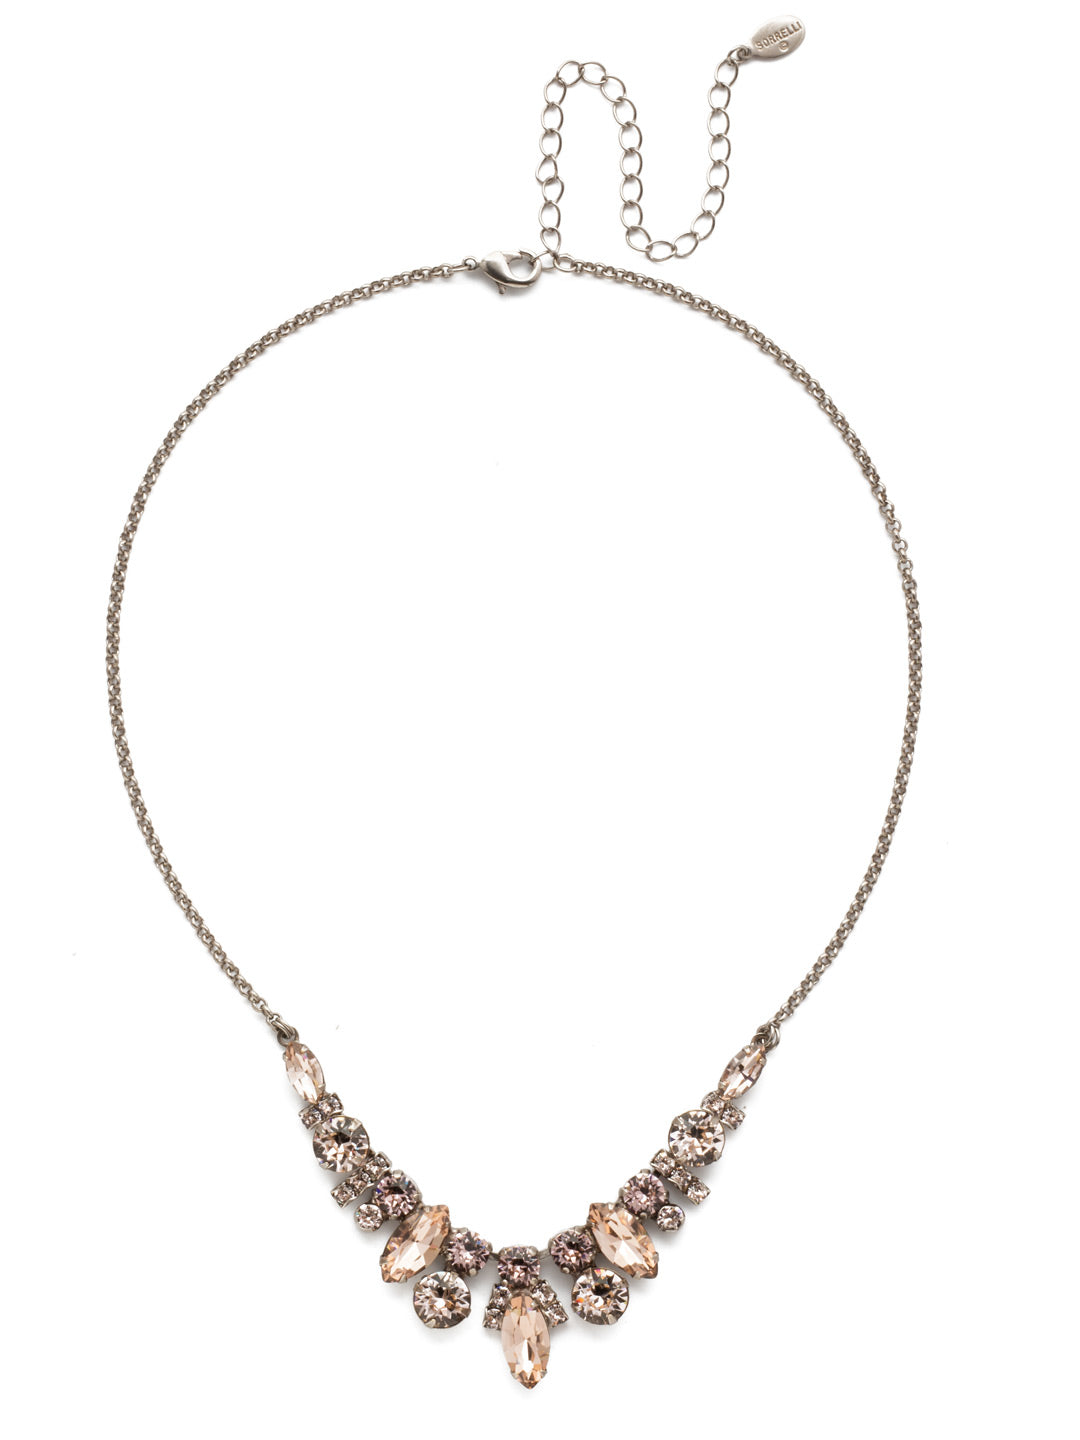 Noveau Navette Statement Necklace - NDG90ASSBL